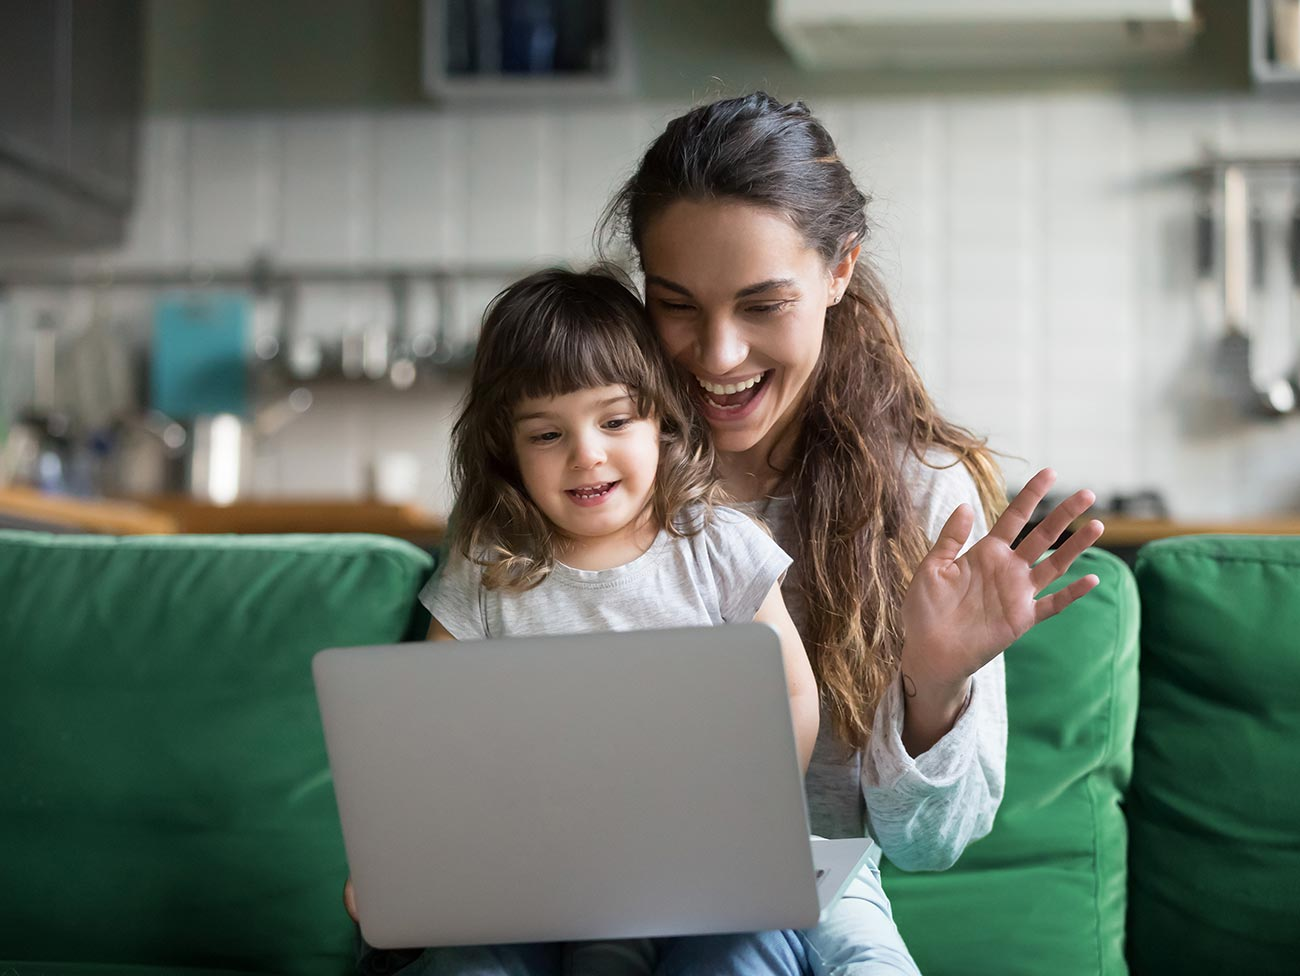 woman with young girl looking at laptop computer and smiling